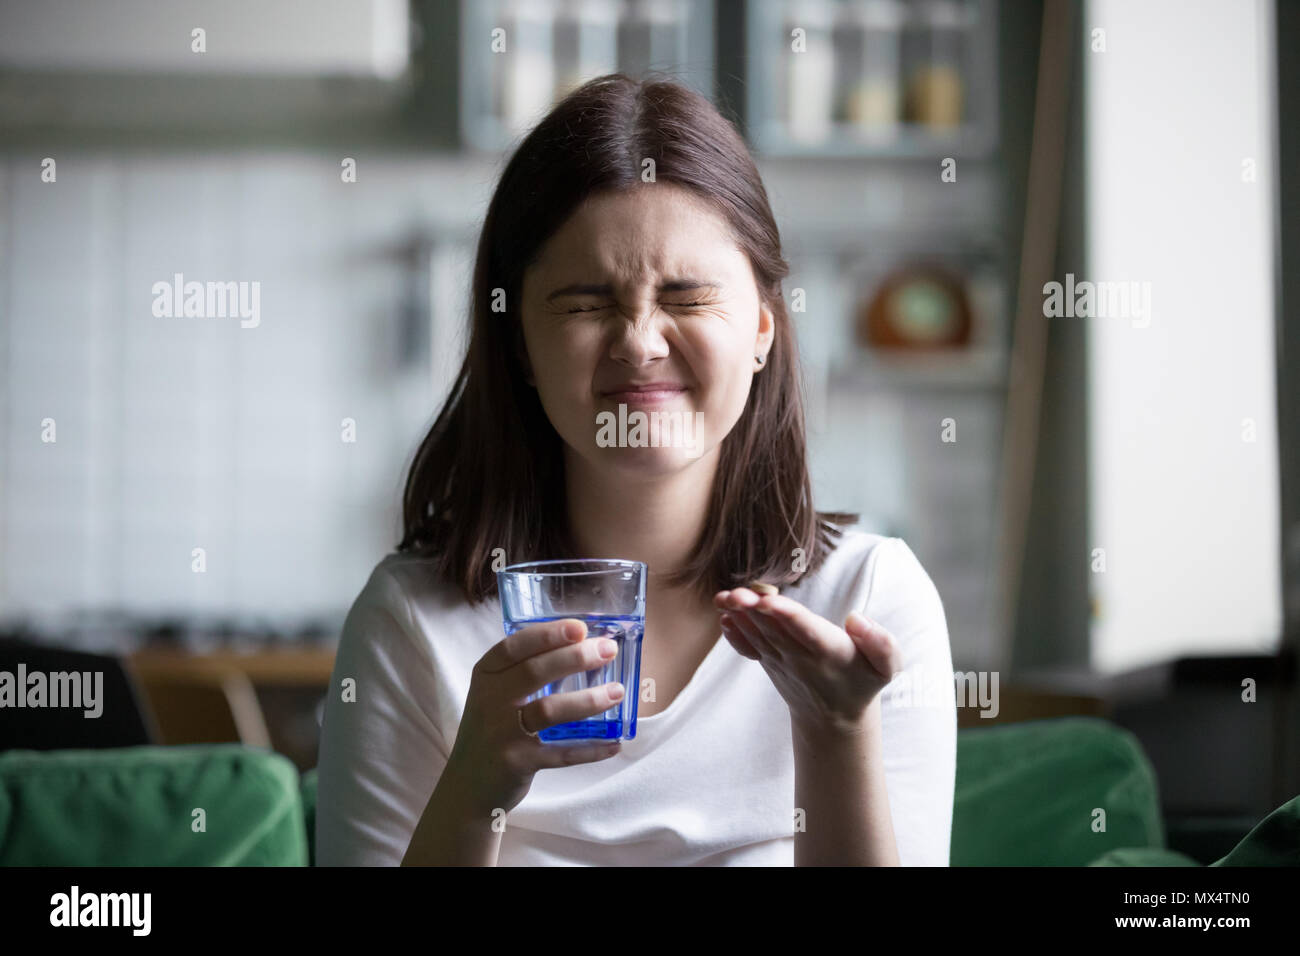 Frustrated stressed young woman grimacing afraid of taking pill  - Stock Image